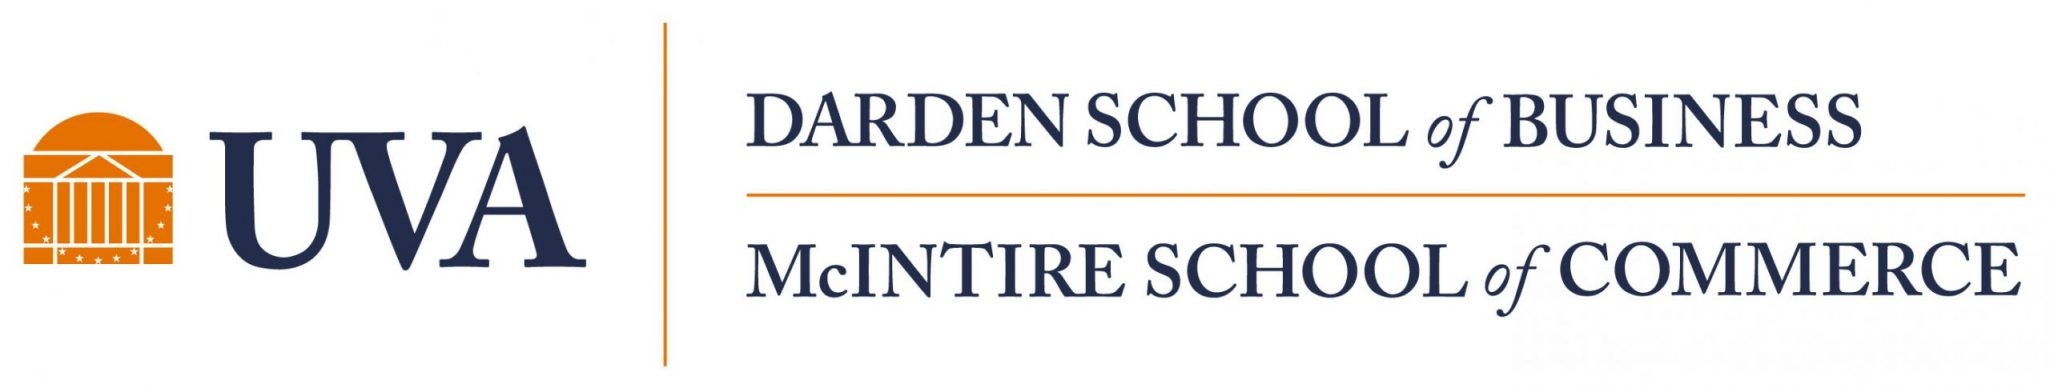 Master's of Business Analytics - UVA Darden School of Business